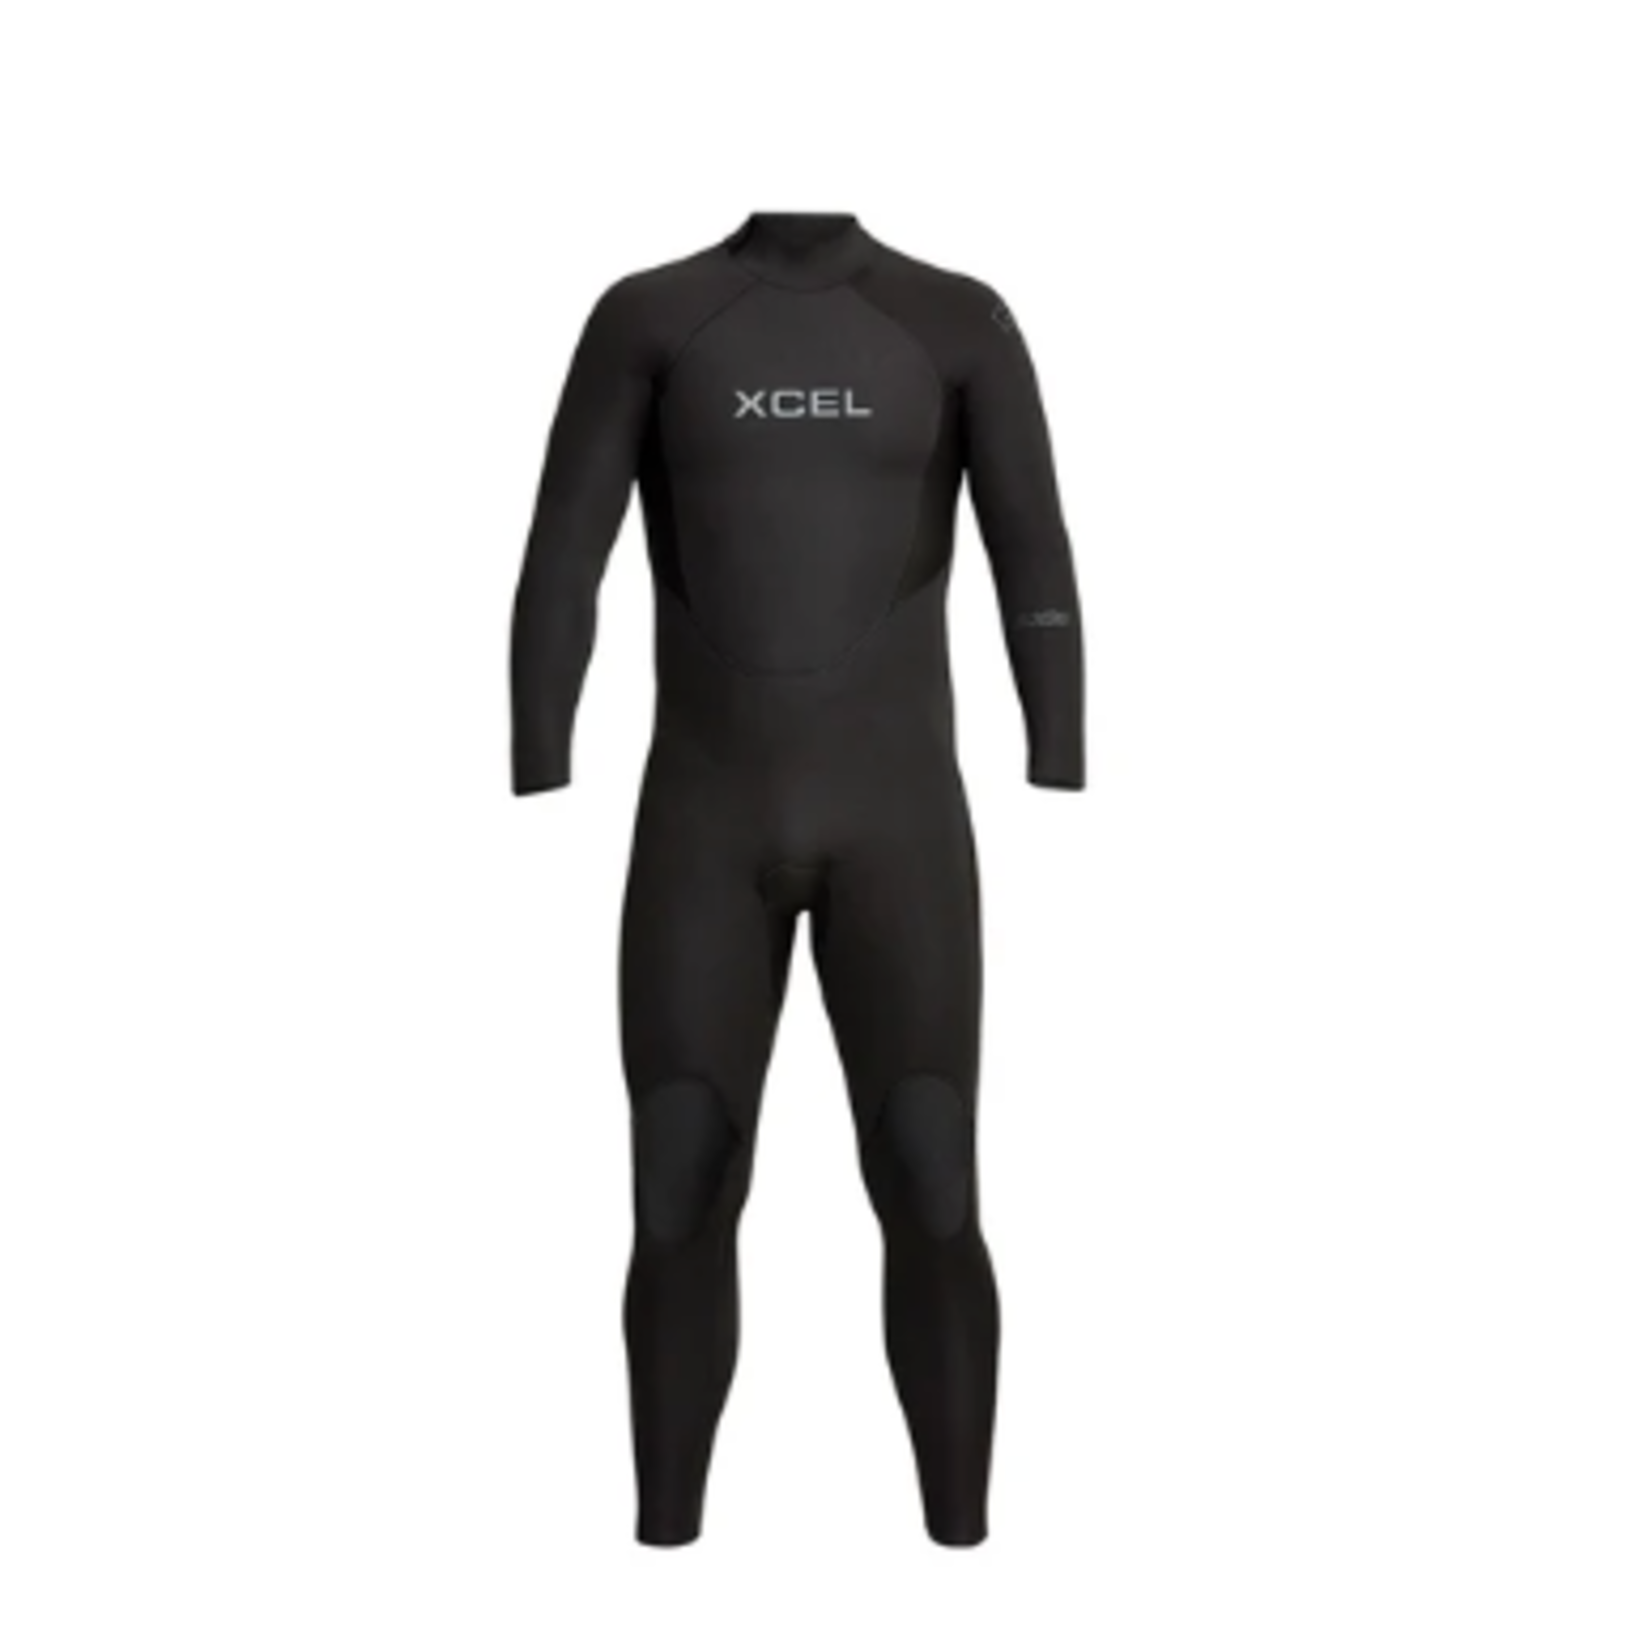 XCEL Wetsuits XCEL Men's Axis 5/4mm Back Zip Wetsuit.